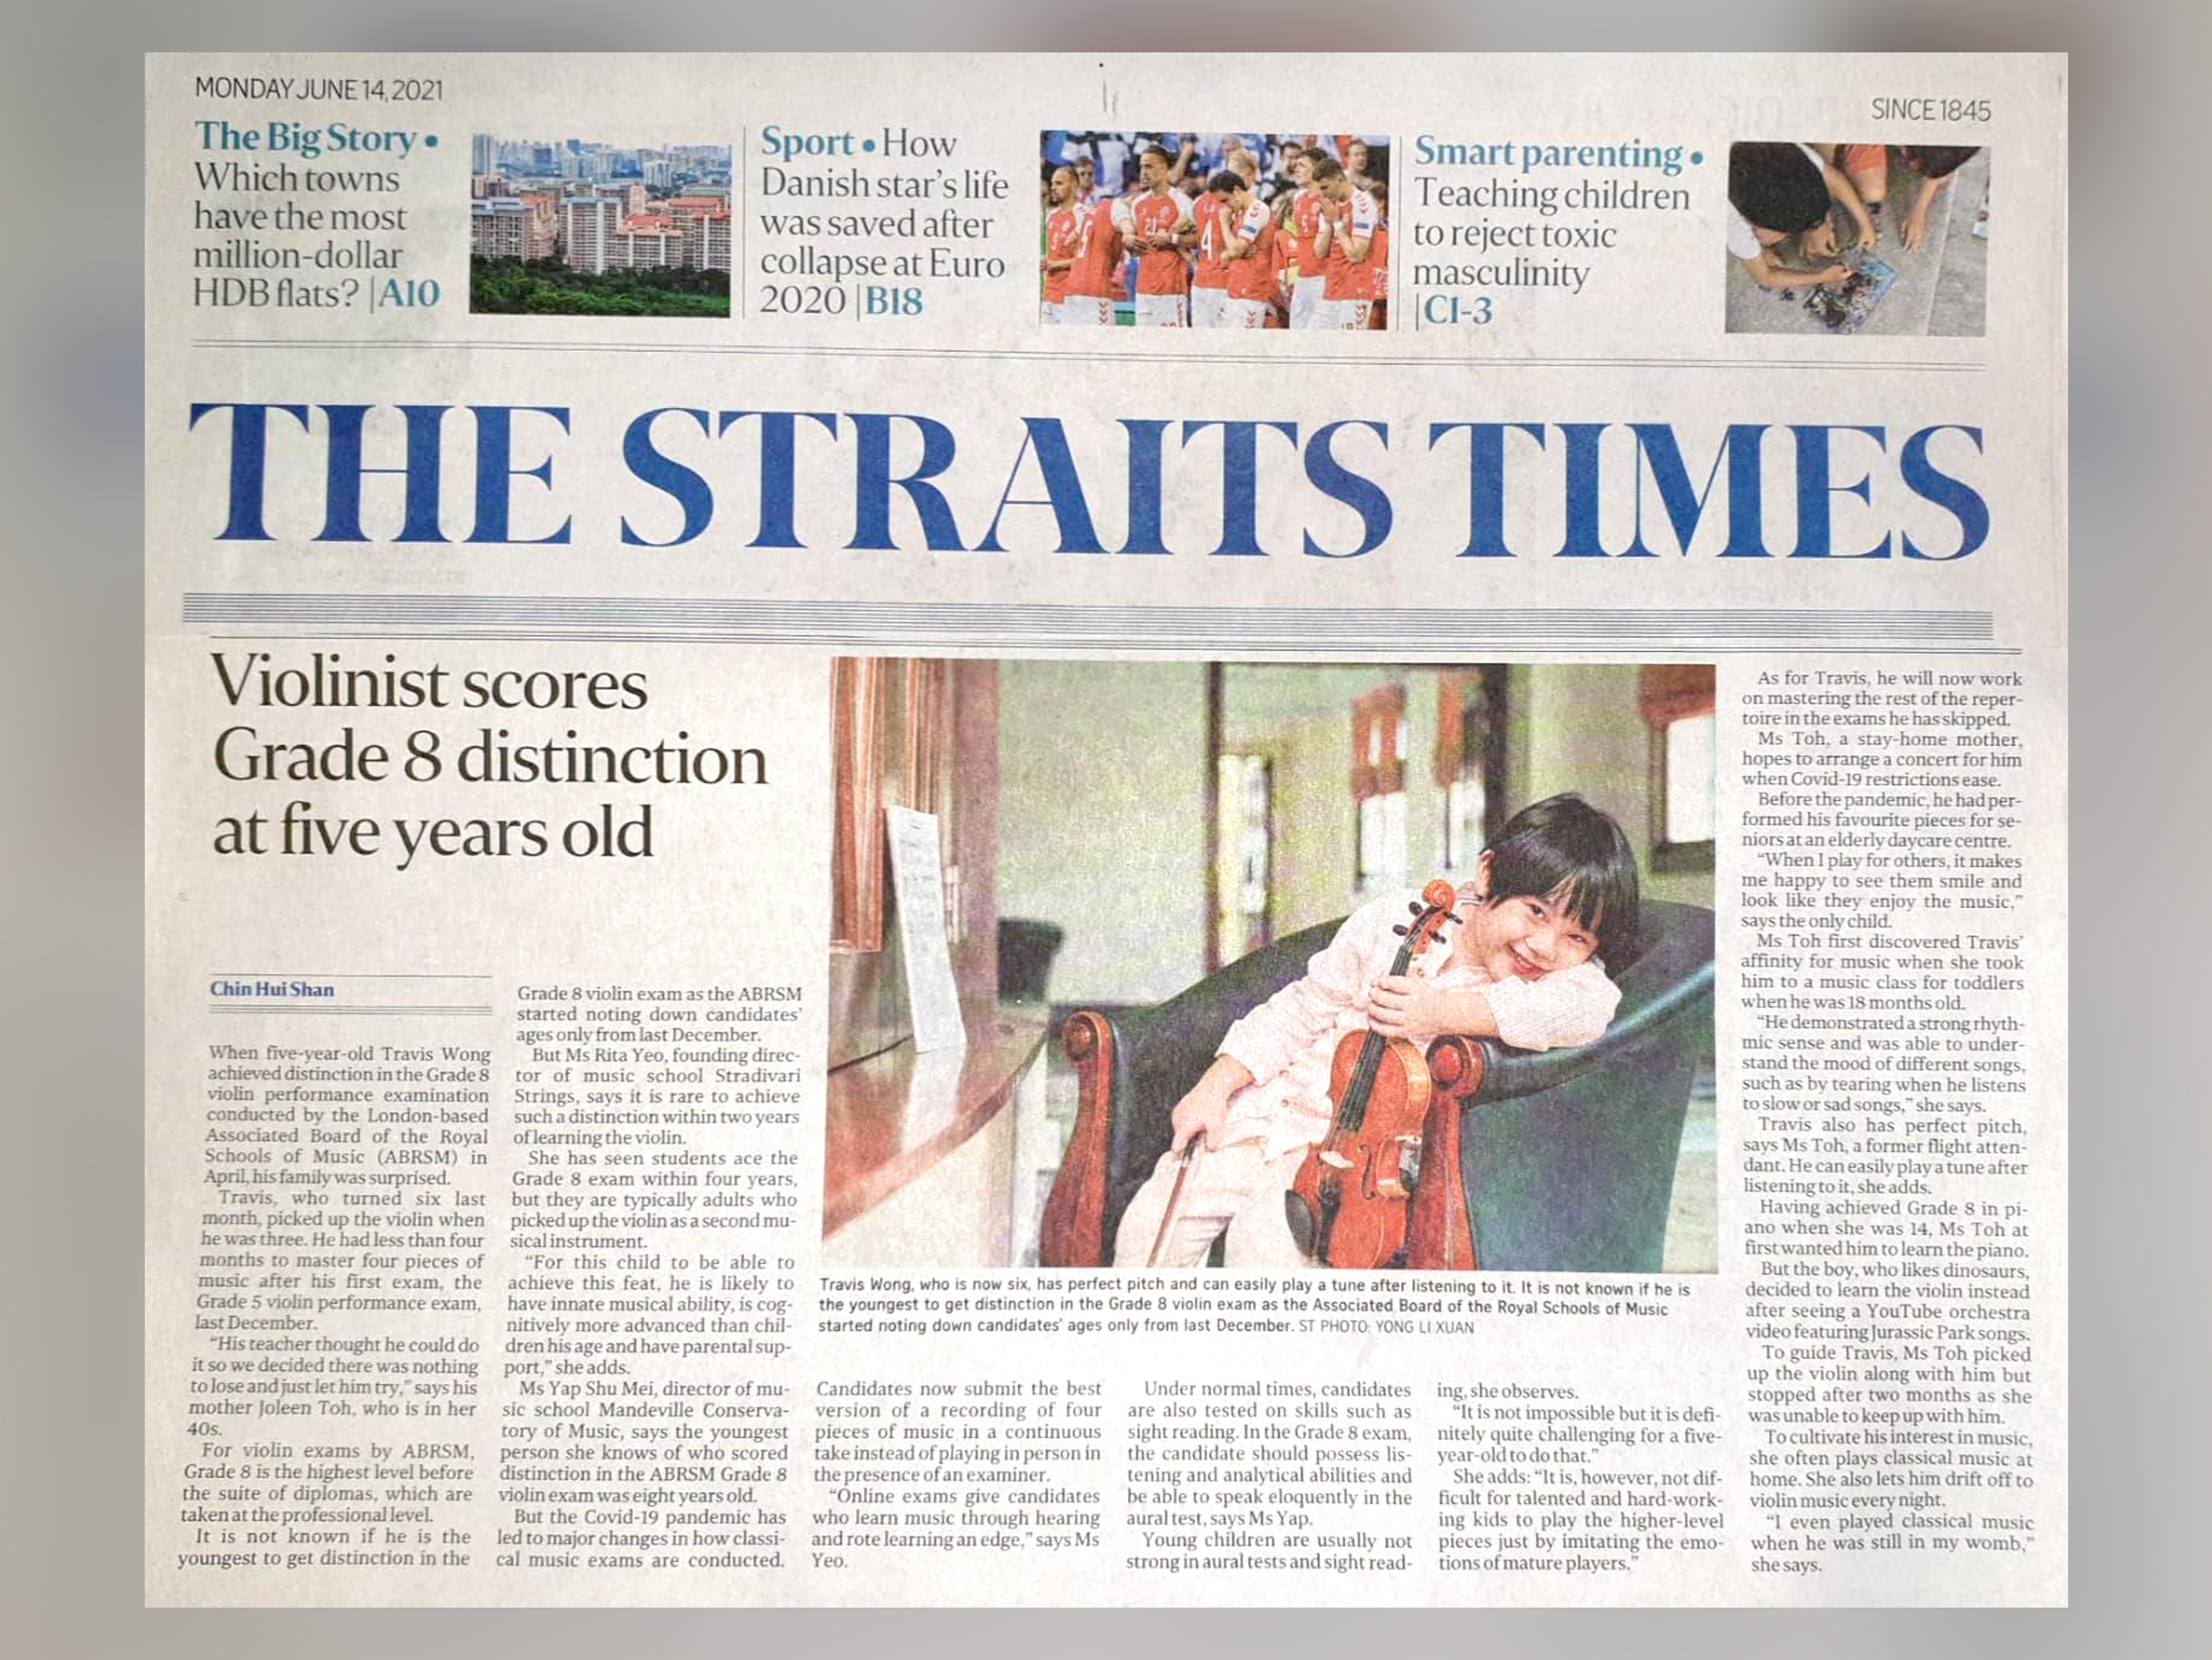 Interview by the Straits Times on 14th June, 2021